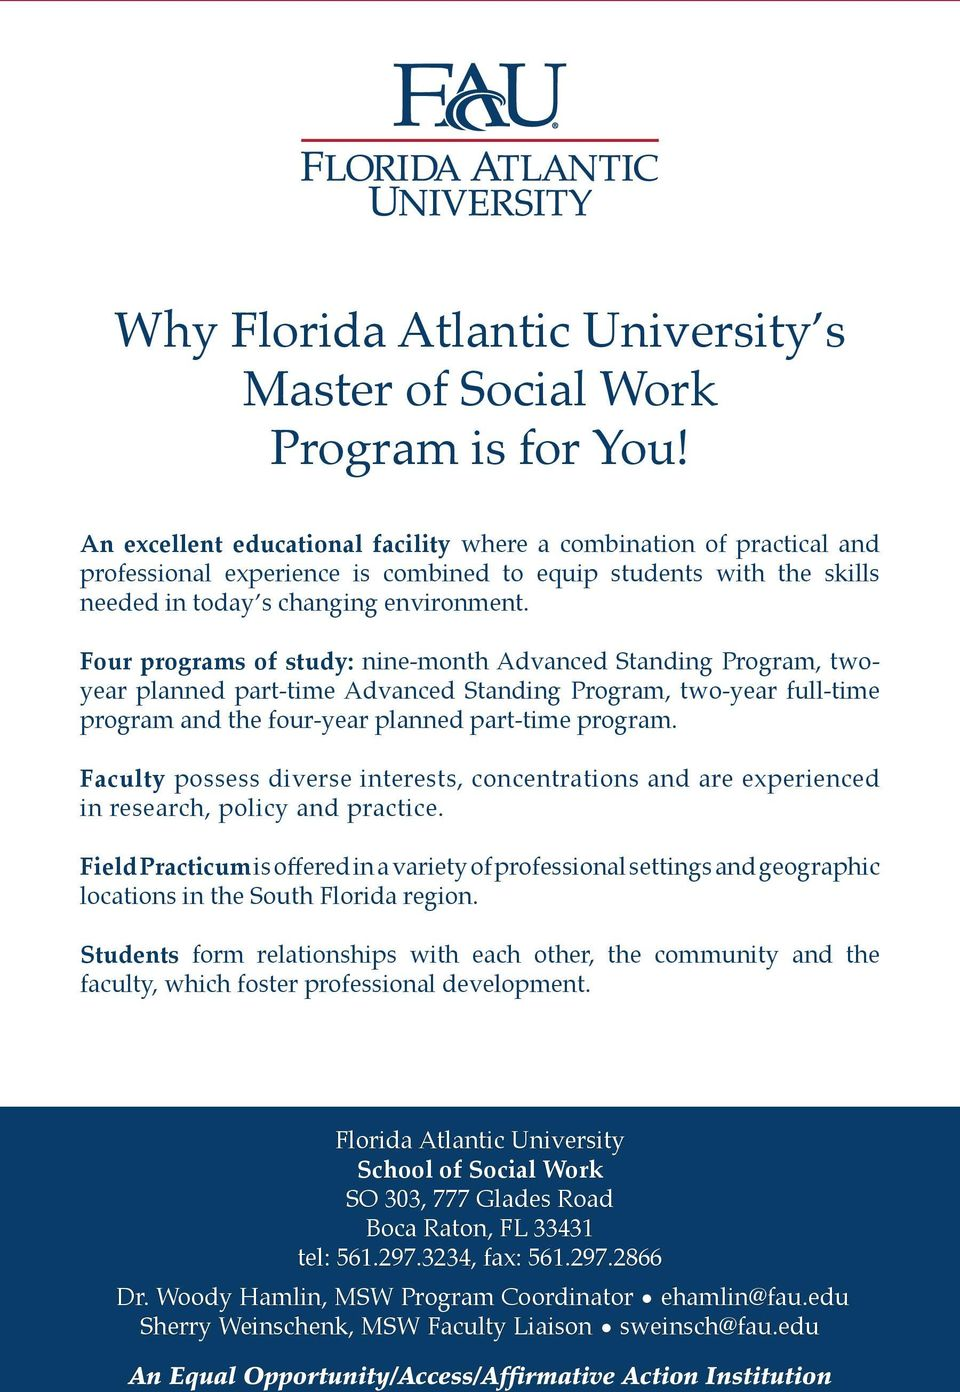 Four programs of study: nine-month Advanced Standing Program, twoyear planned part-time Advanced Standing Program, two-year full-time program and the four-year planned part-time program.